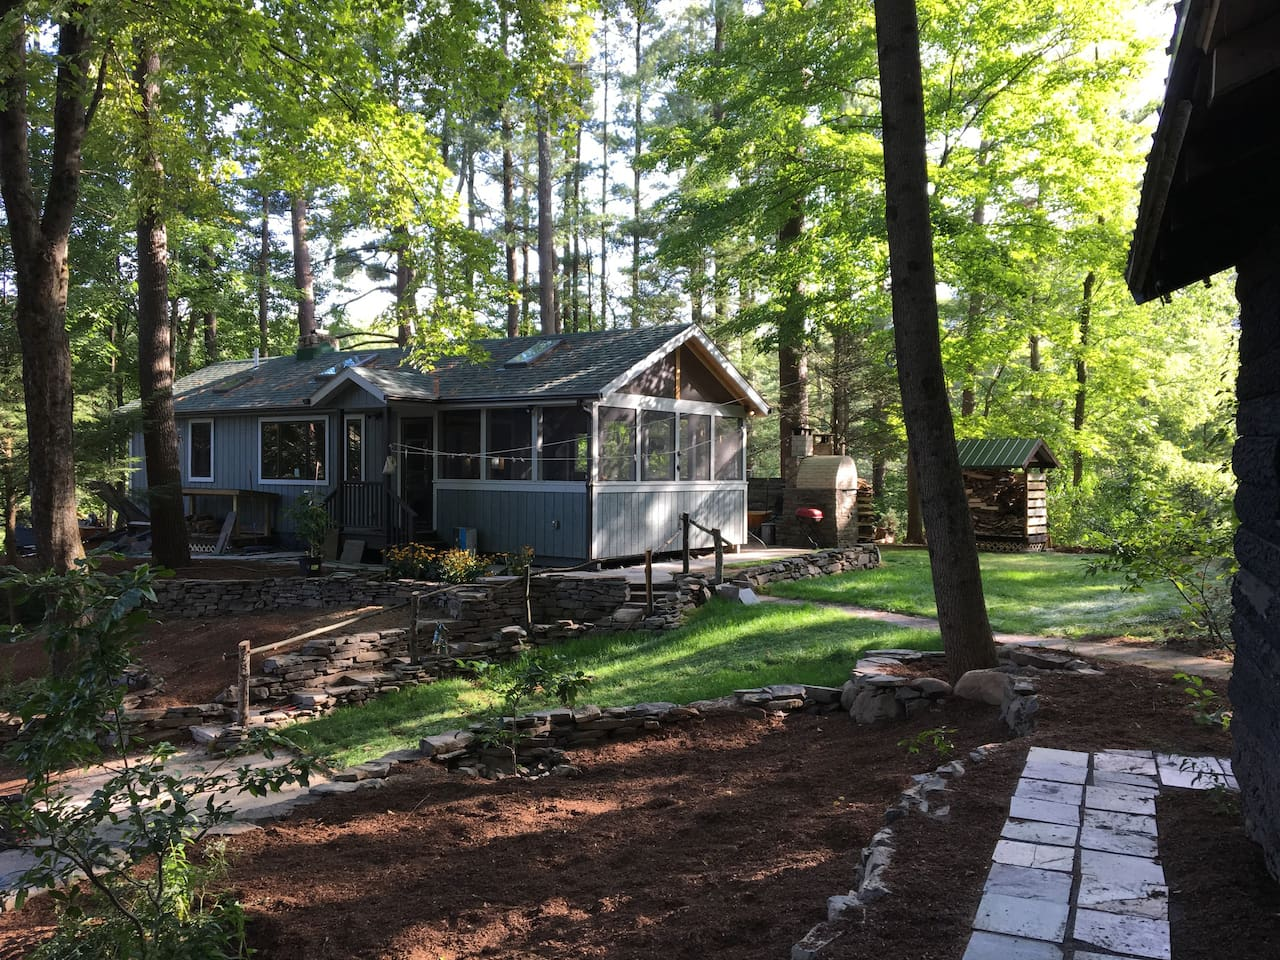 2 bedroom cabin in a private setting, with hot tub, outdoor fireplace, pizza oven,and separate writer's studio